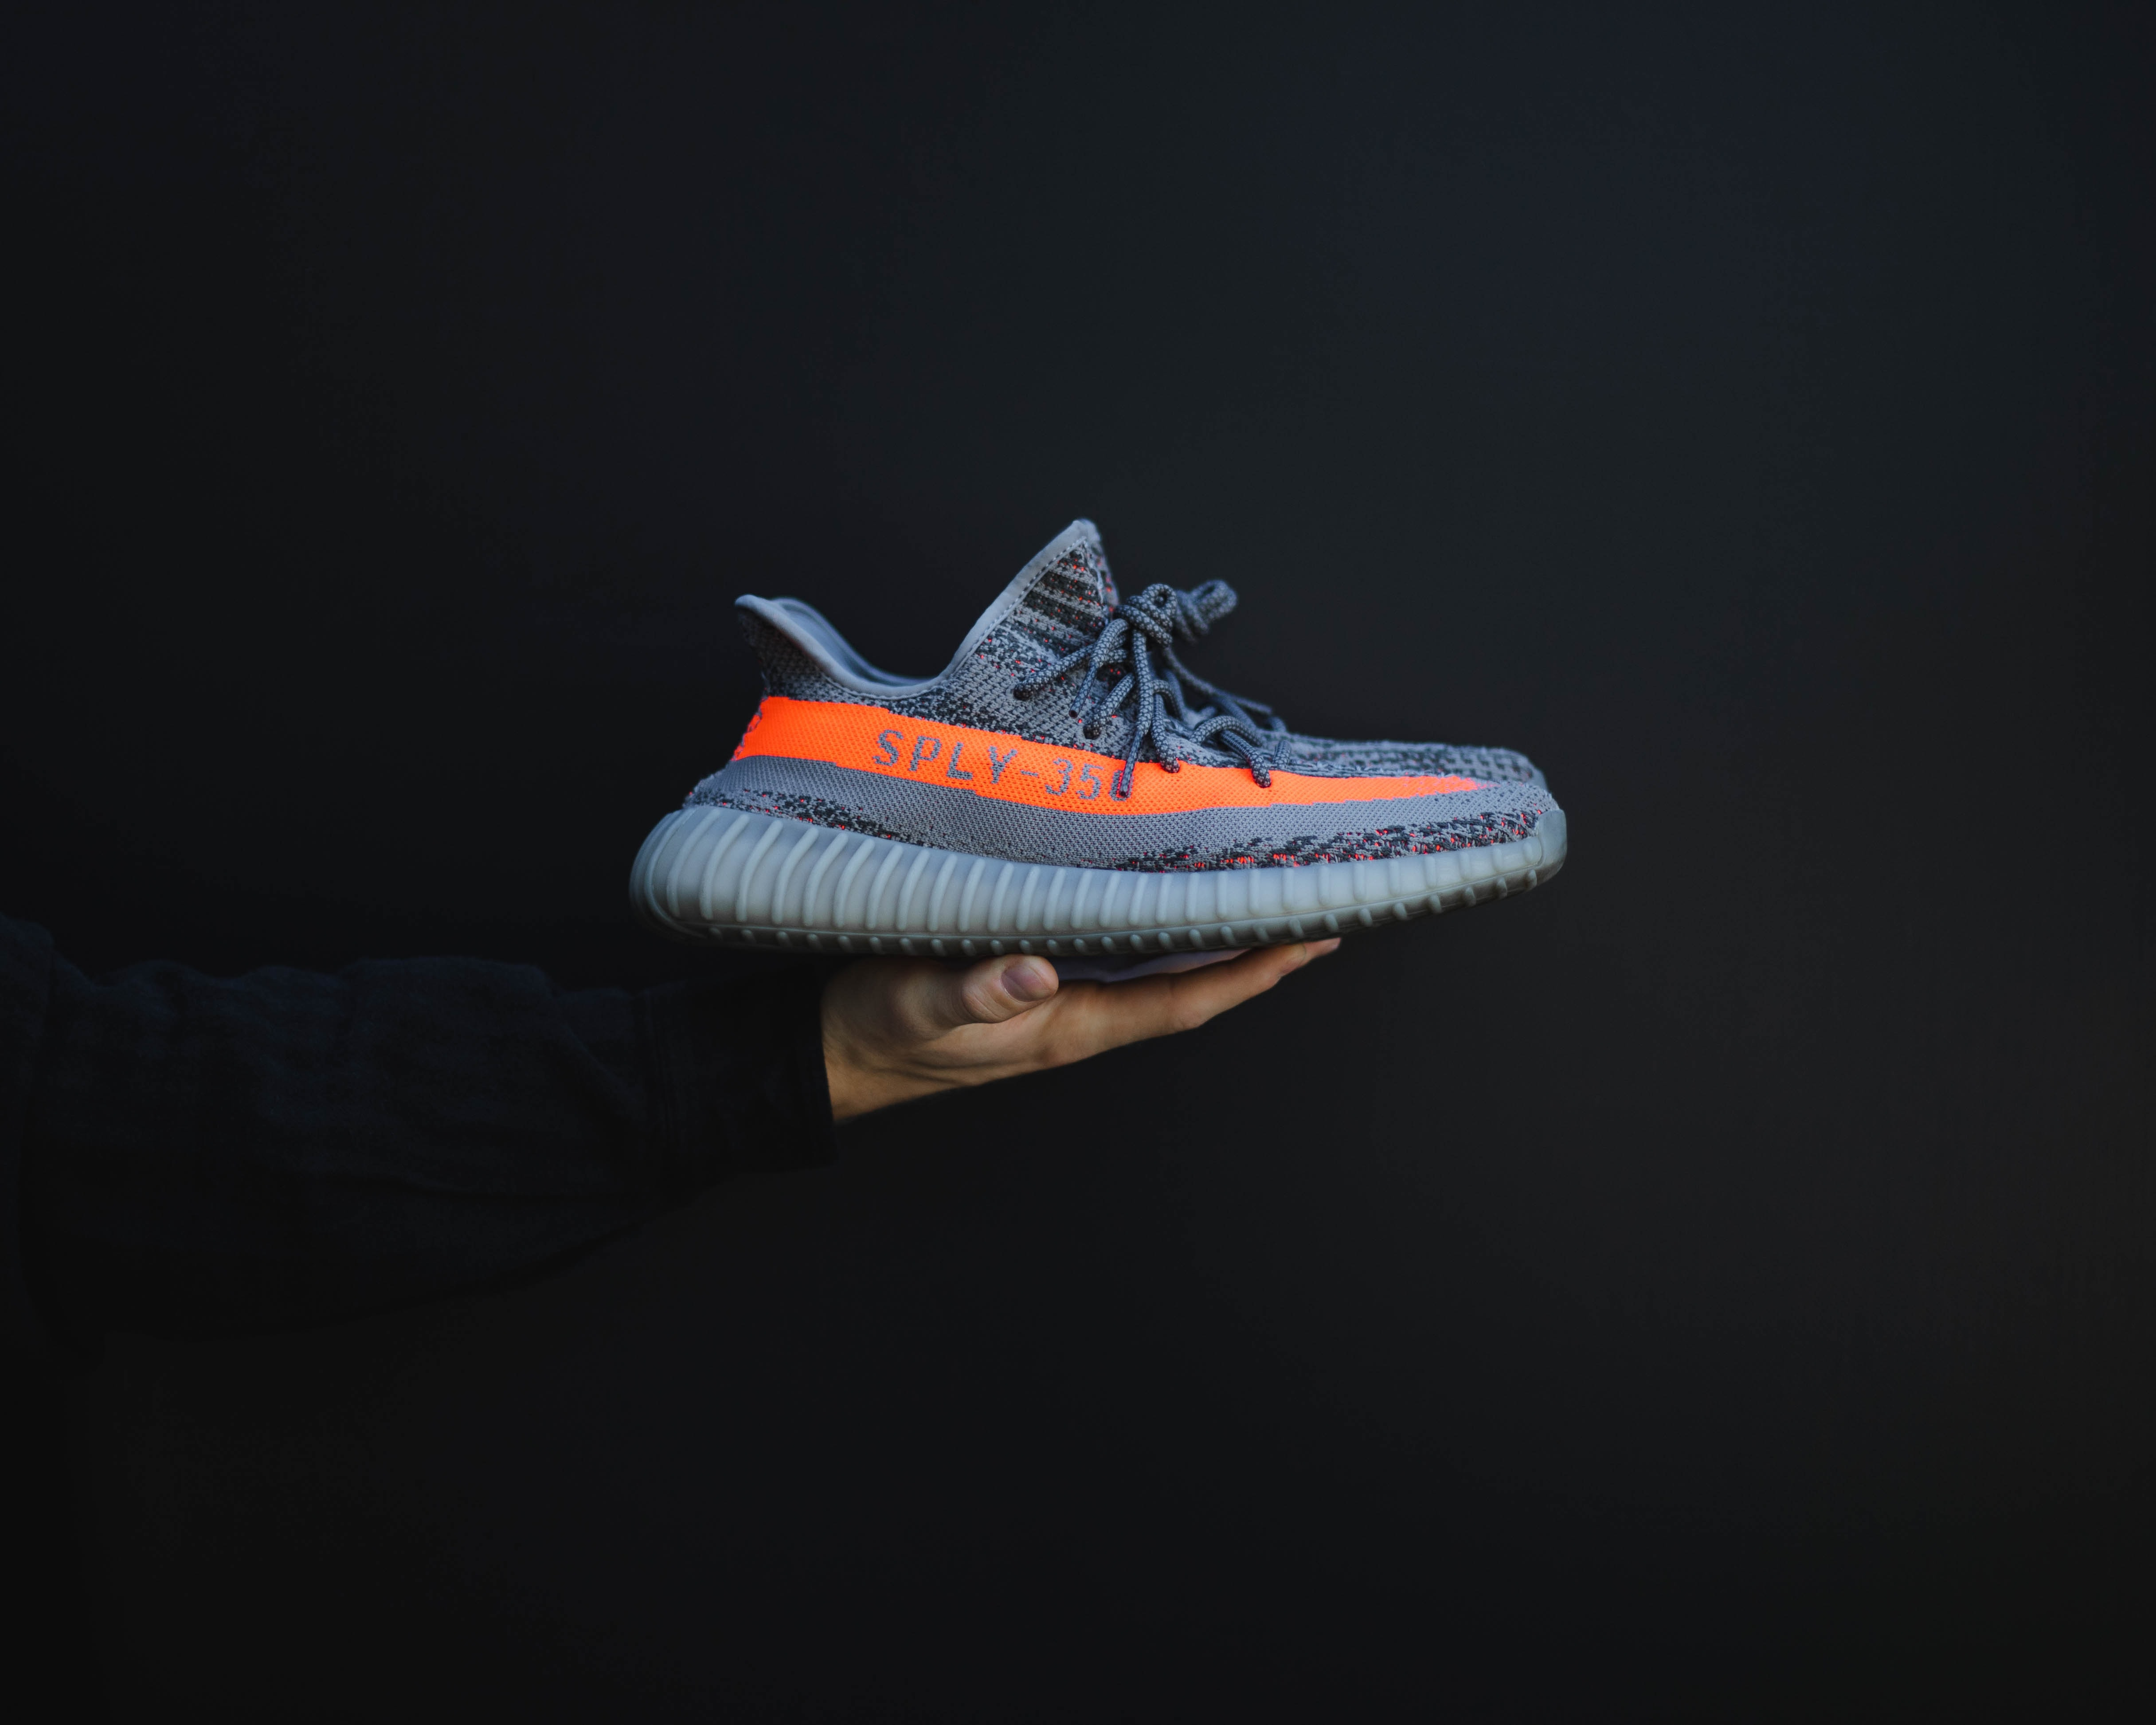 person holding gray and orange adidas Yeezy Boost 350 V2